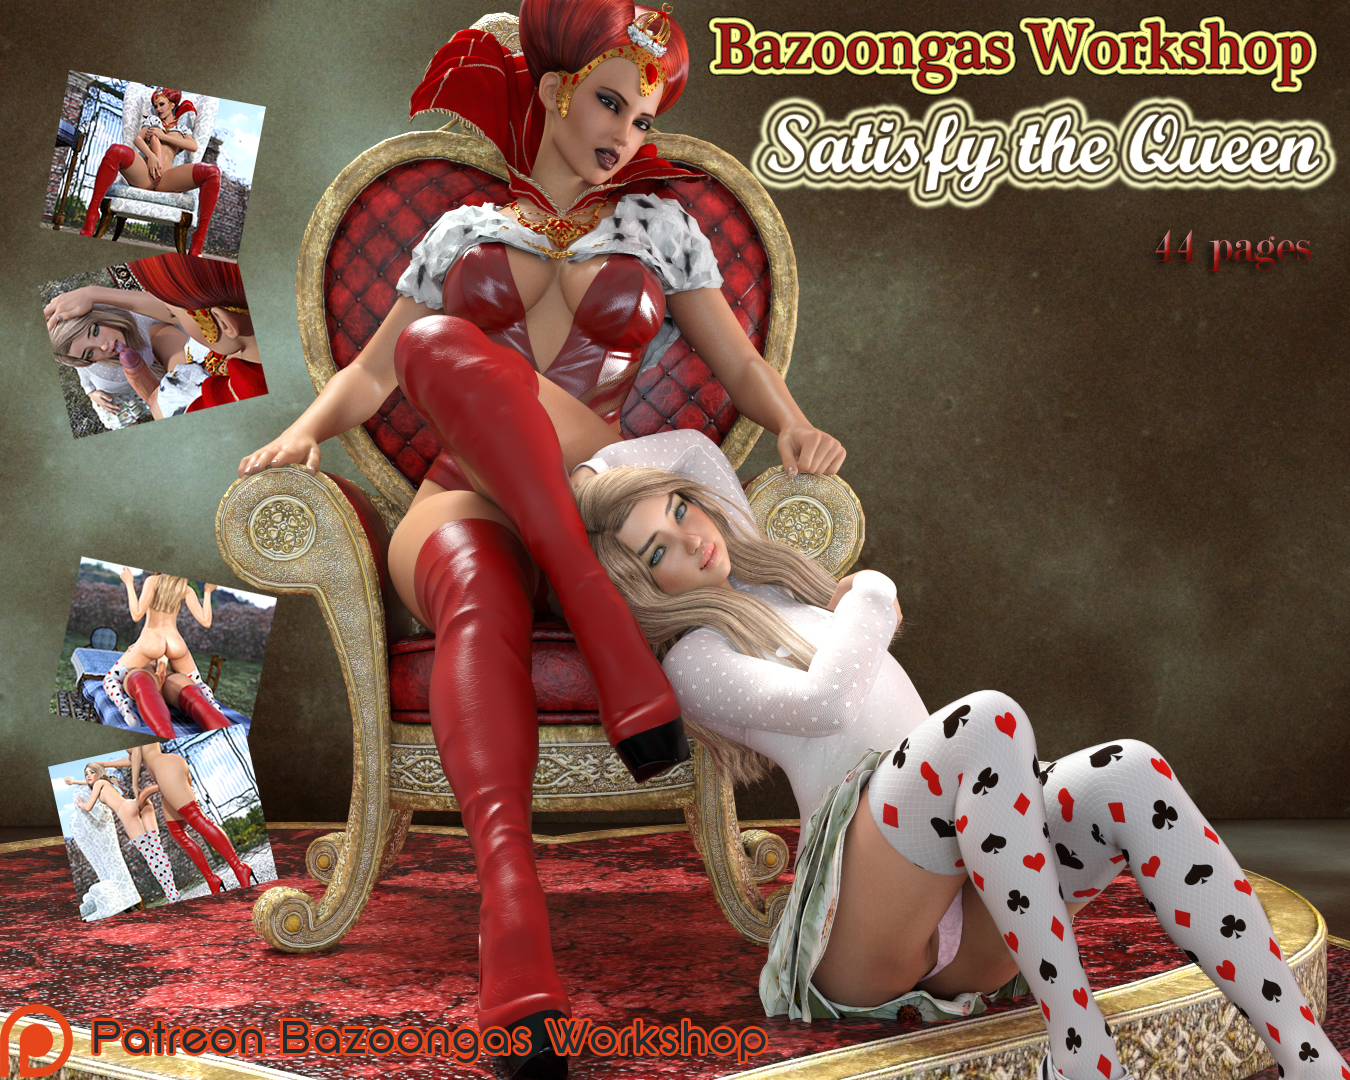 Goodcomix.tk Alice in Wonderland - [Bazoongas Workshop][3D] - Satisfy the Queen